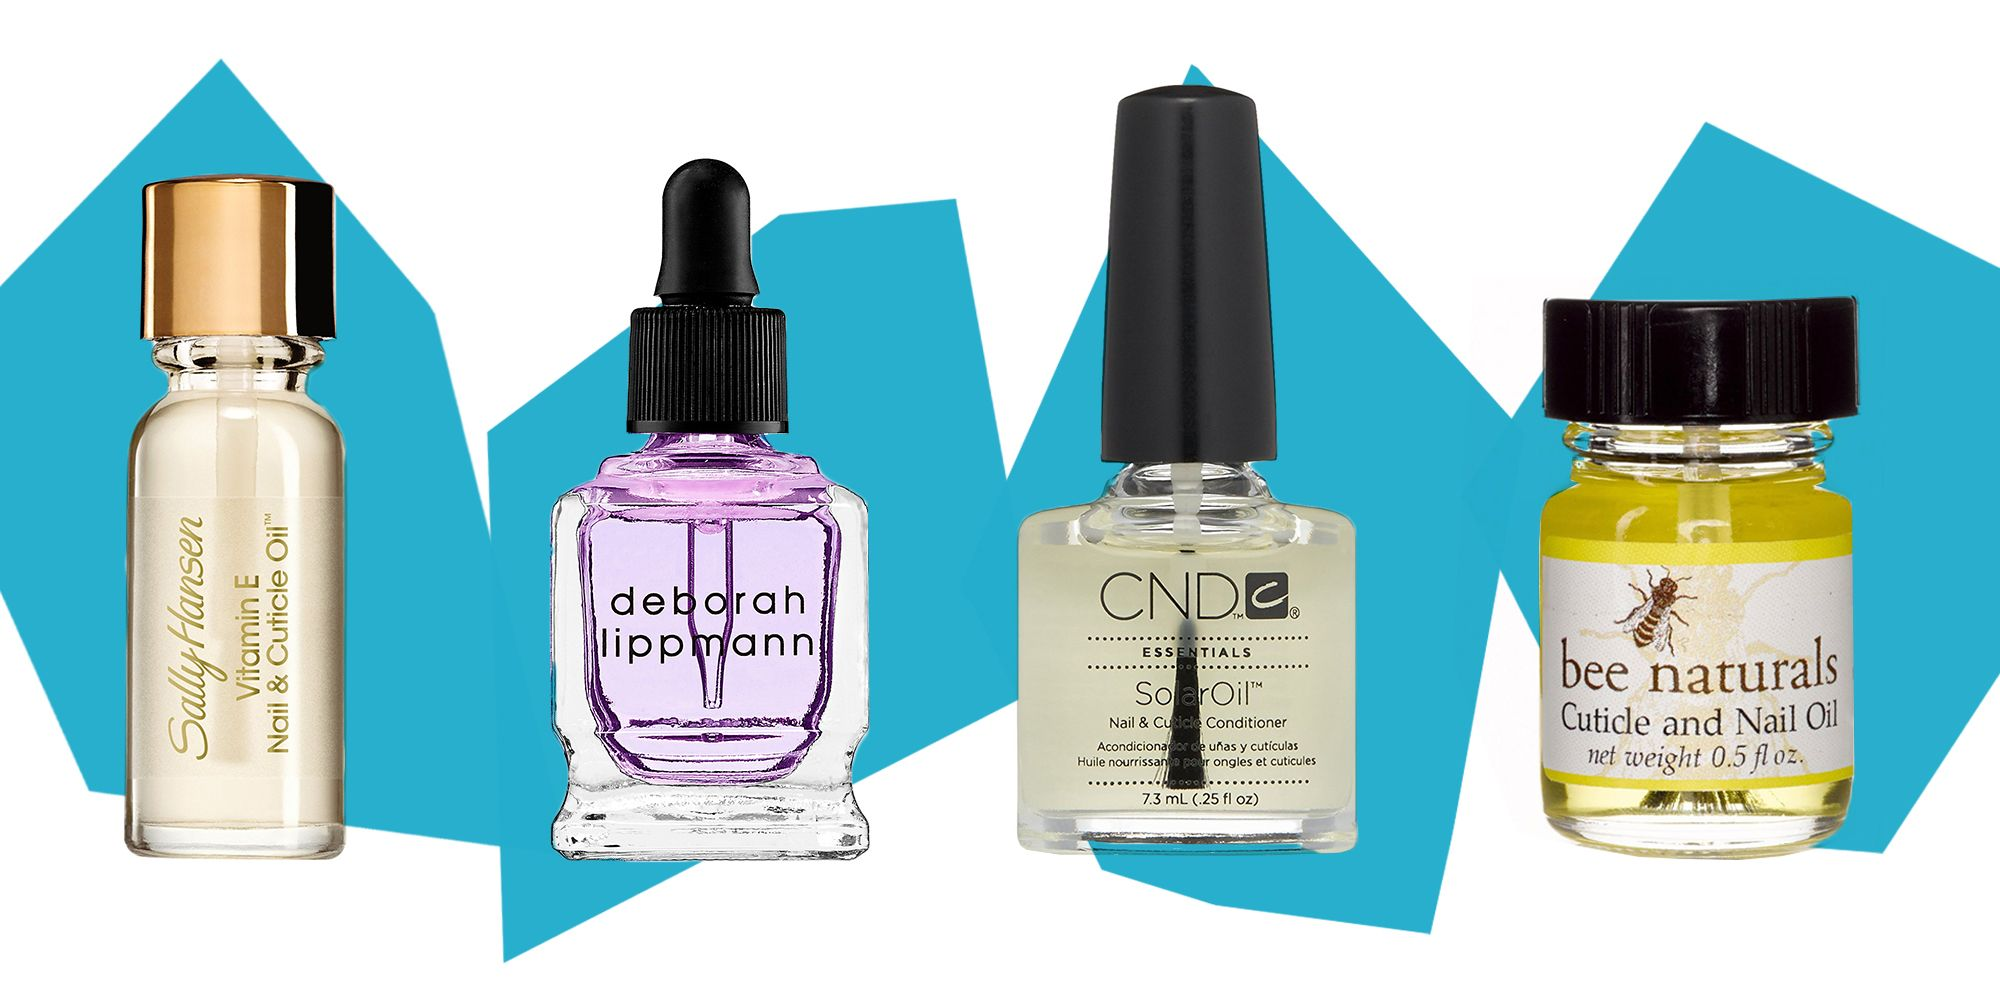 10 Best Cuticle Oils for 2018 - Nail Oil to Soften Damaged Cuticles